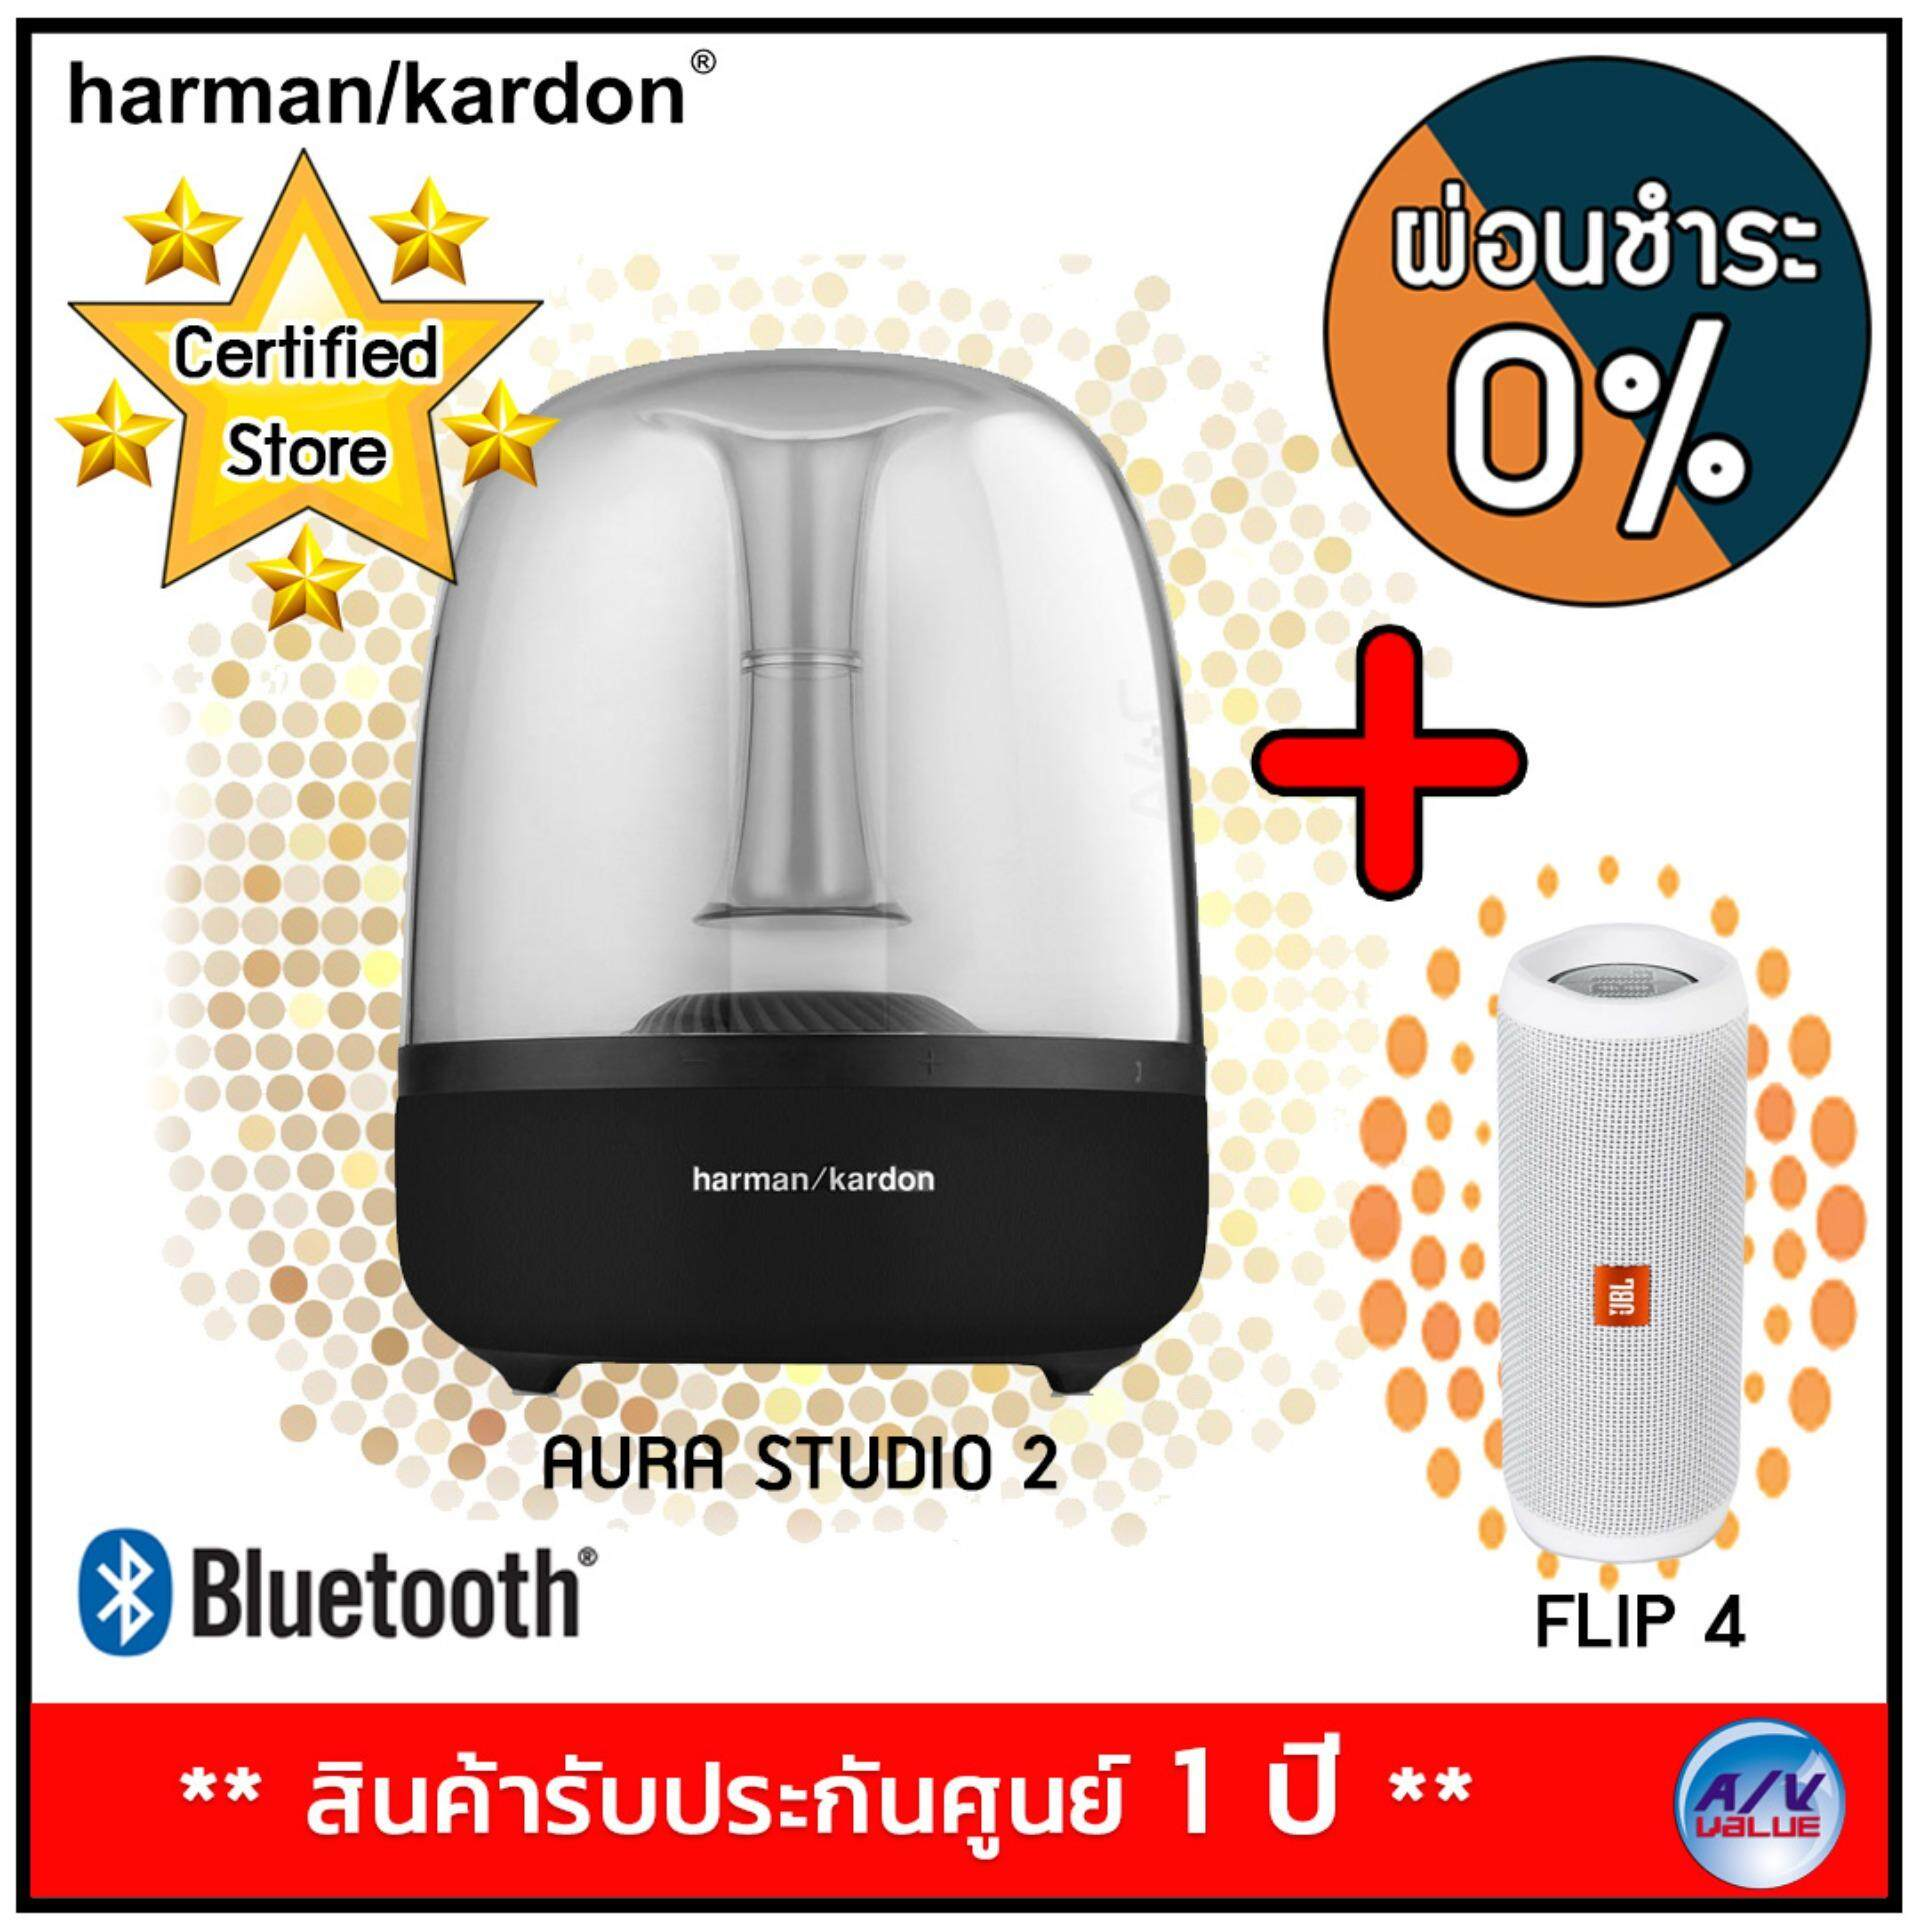 ยี่ห้อนี้ดีไหม  พิษณุโลก Harman Kardon AURA STUDIO 2 - Black + JBL FLIP 4 waterproof portable Bluetooth speaker - White